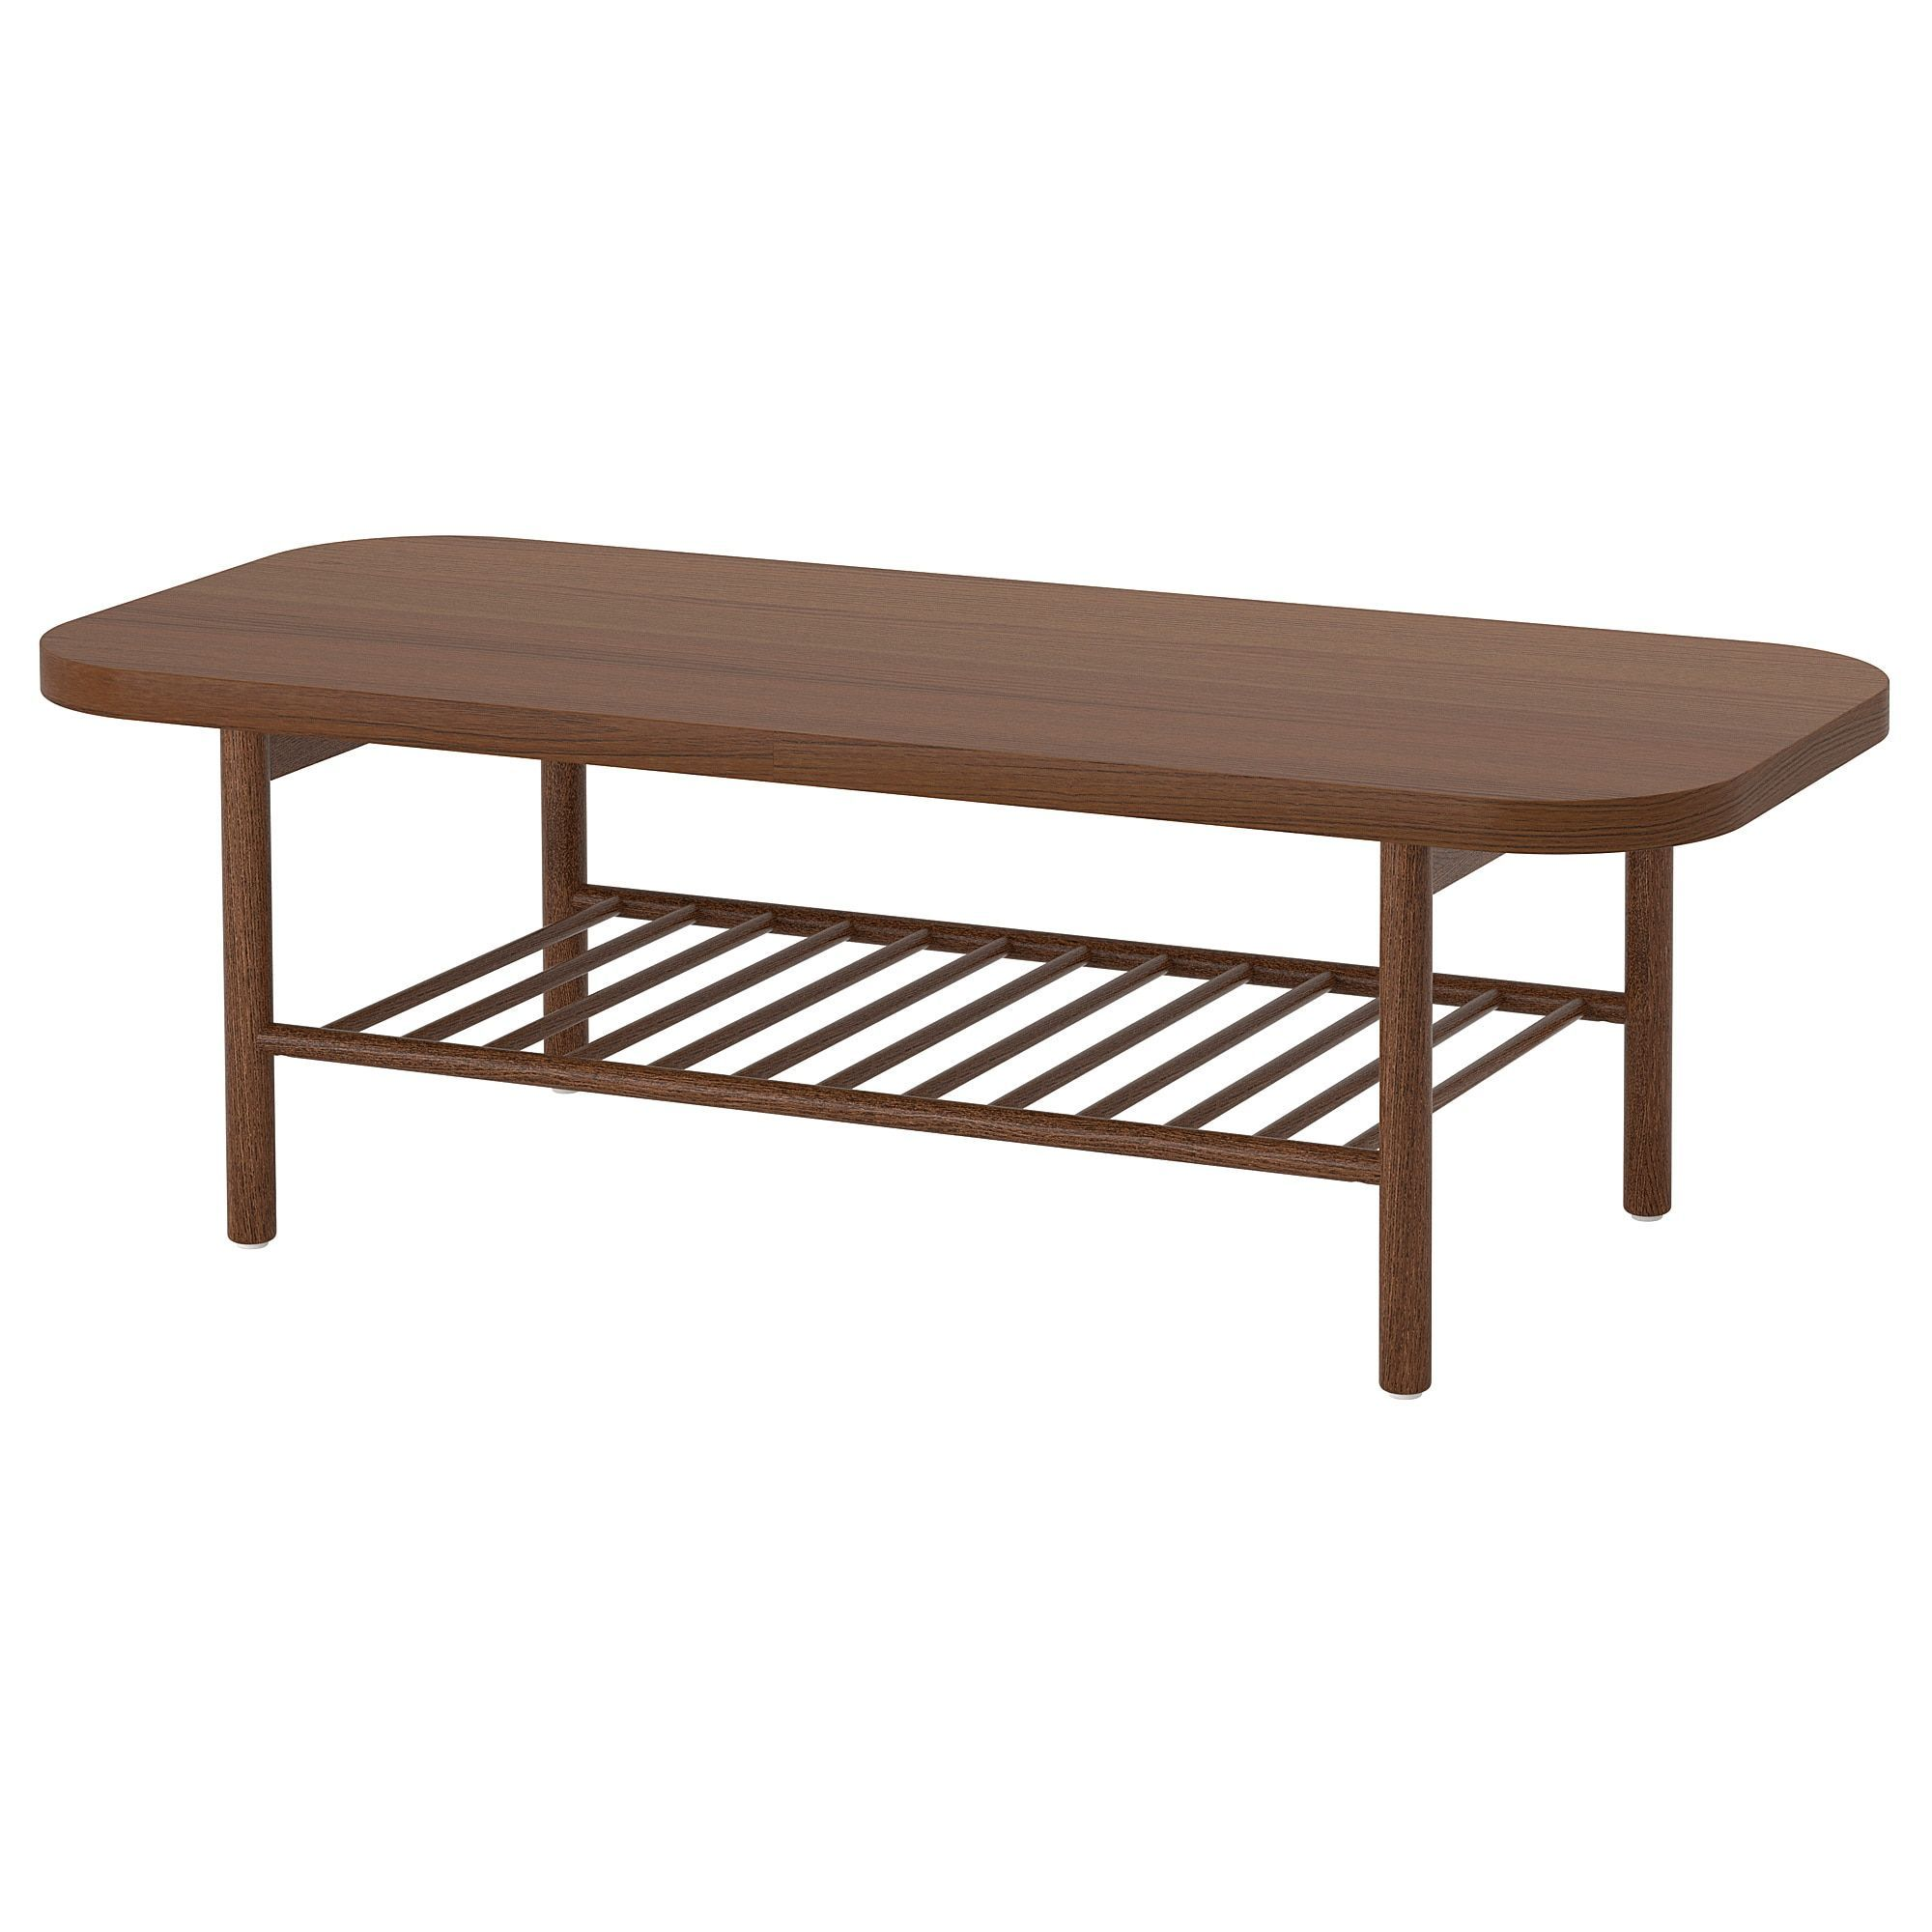 Ikea Listerby Coffee Table Brown In 2019 Ikea Coffee Table Ikea Living Room Furniture Layout In 2020 Brown Coffee Table Ikea Coffee Table Coffee Table [ 2000 x 2000 Pixel ]